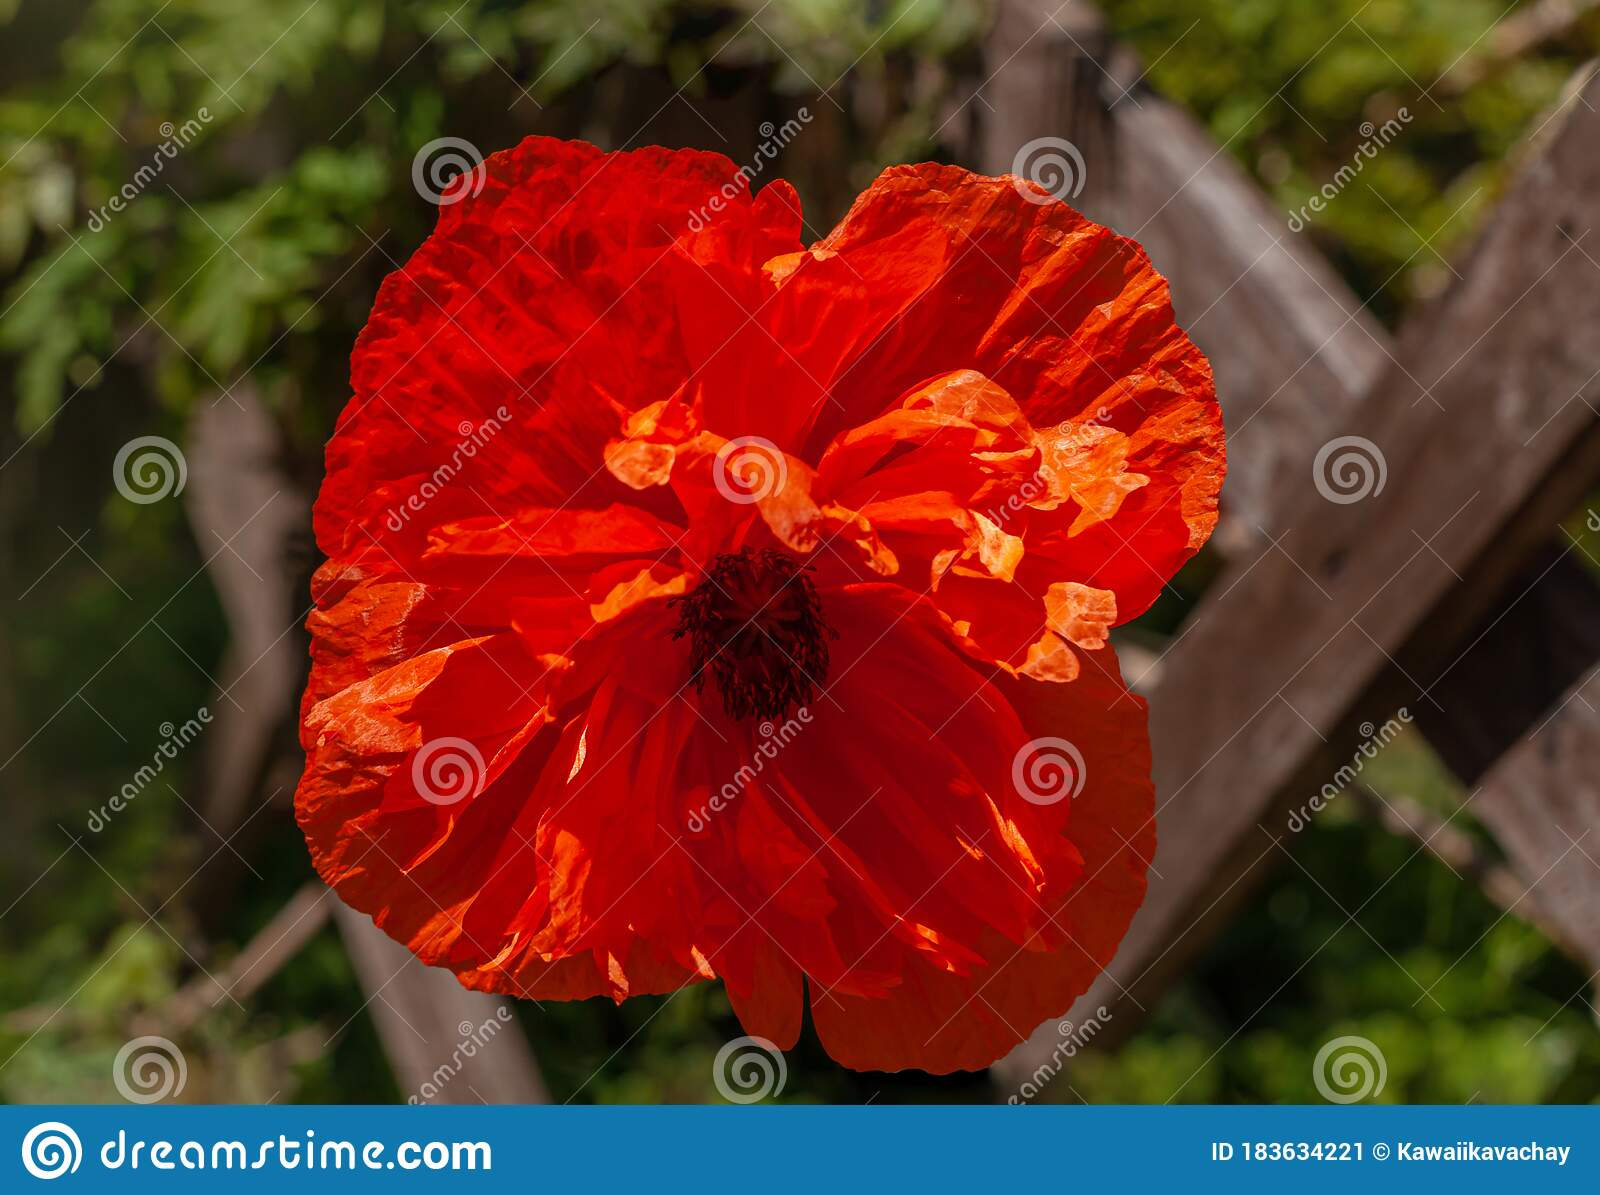 Red Poppy Flower In The Meadow Amazing Wild Poppies Wallpaper Beautiful Nature Photo Copy Space Floral Greeting Card Stock Image Image Of Background Blossom 183634221